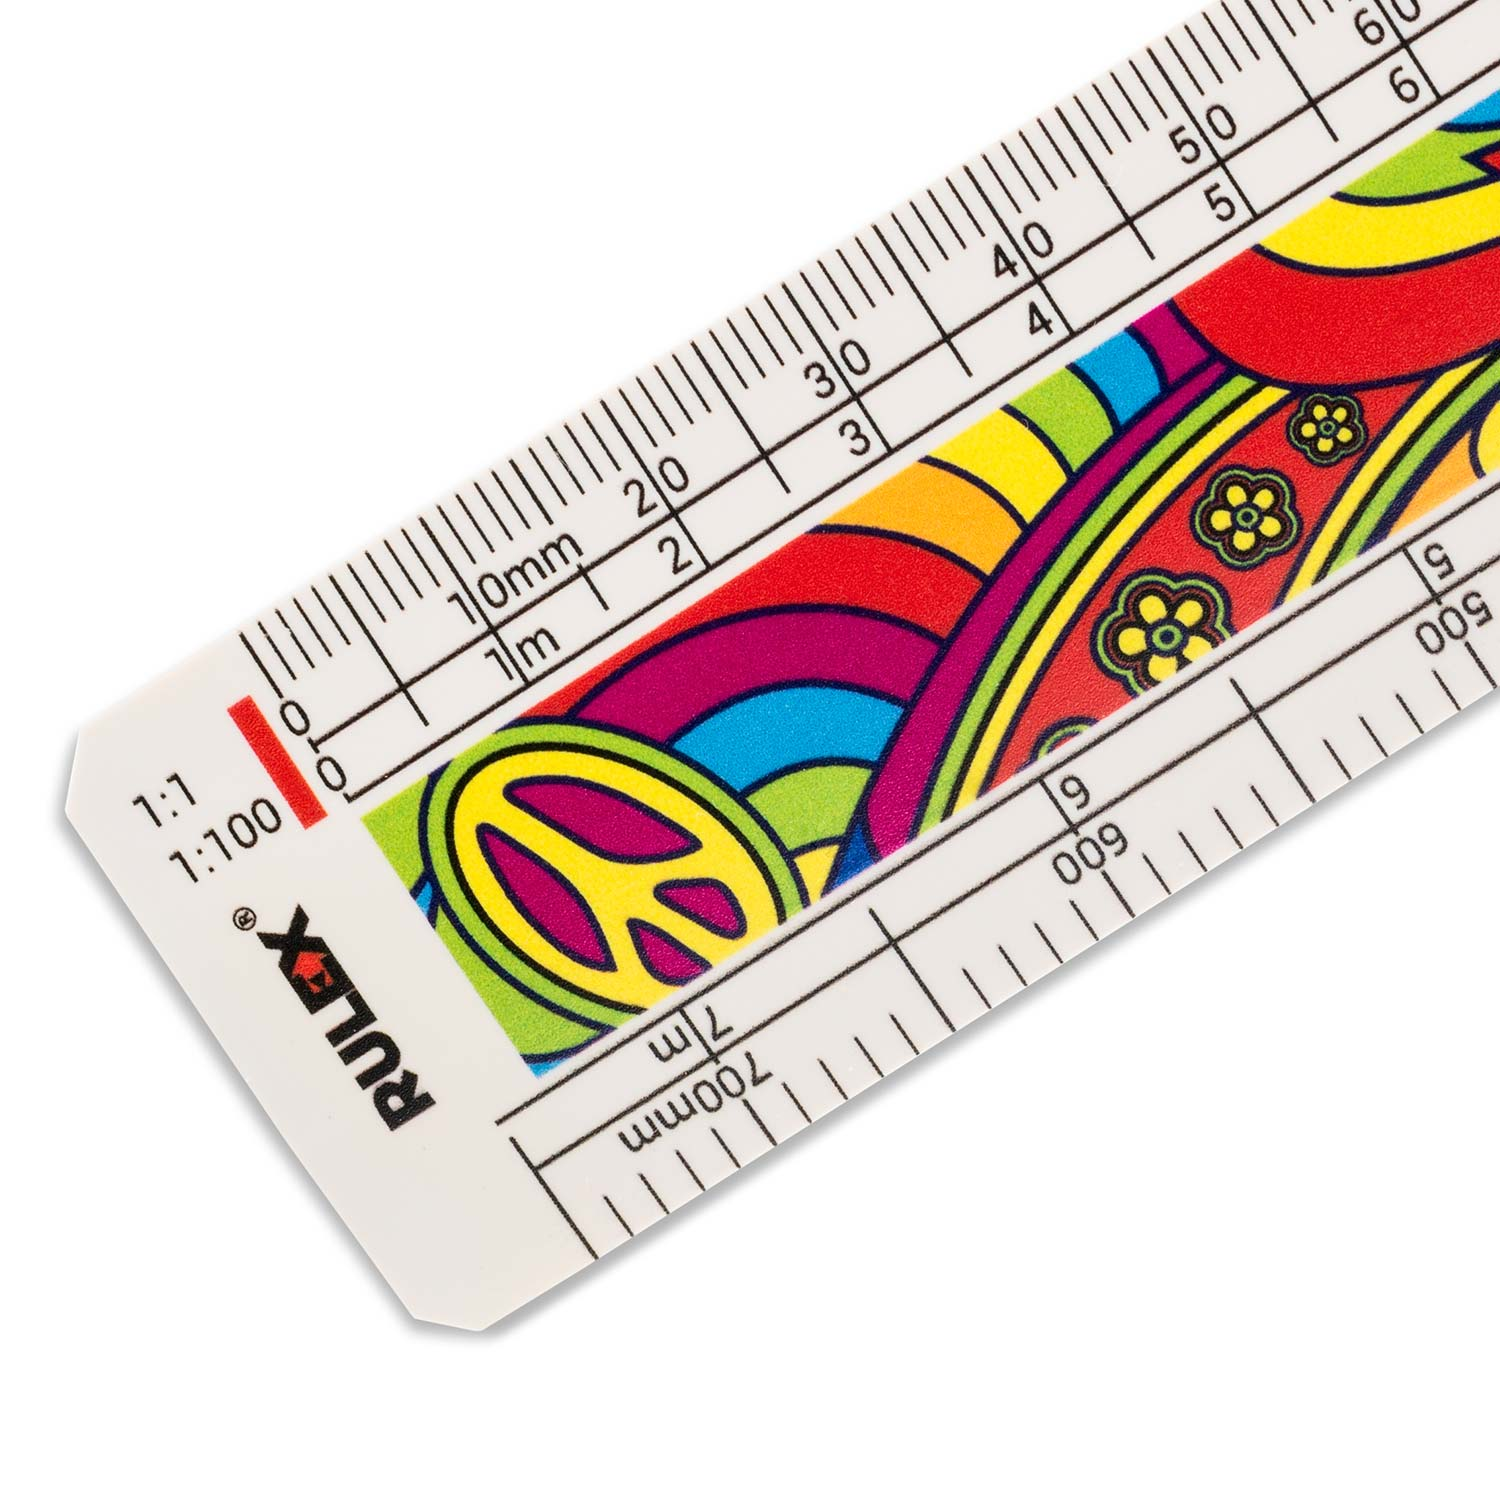 150mm Rulex Architects Flat Oval Scale Ruler With